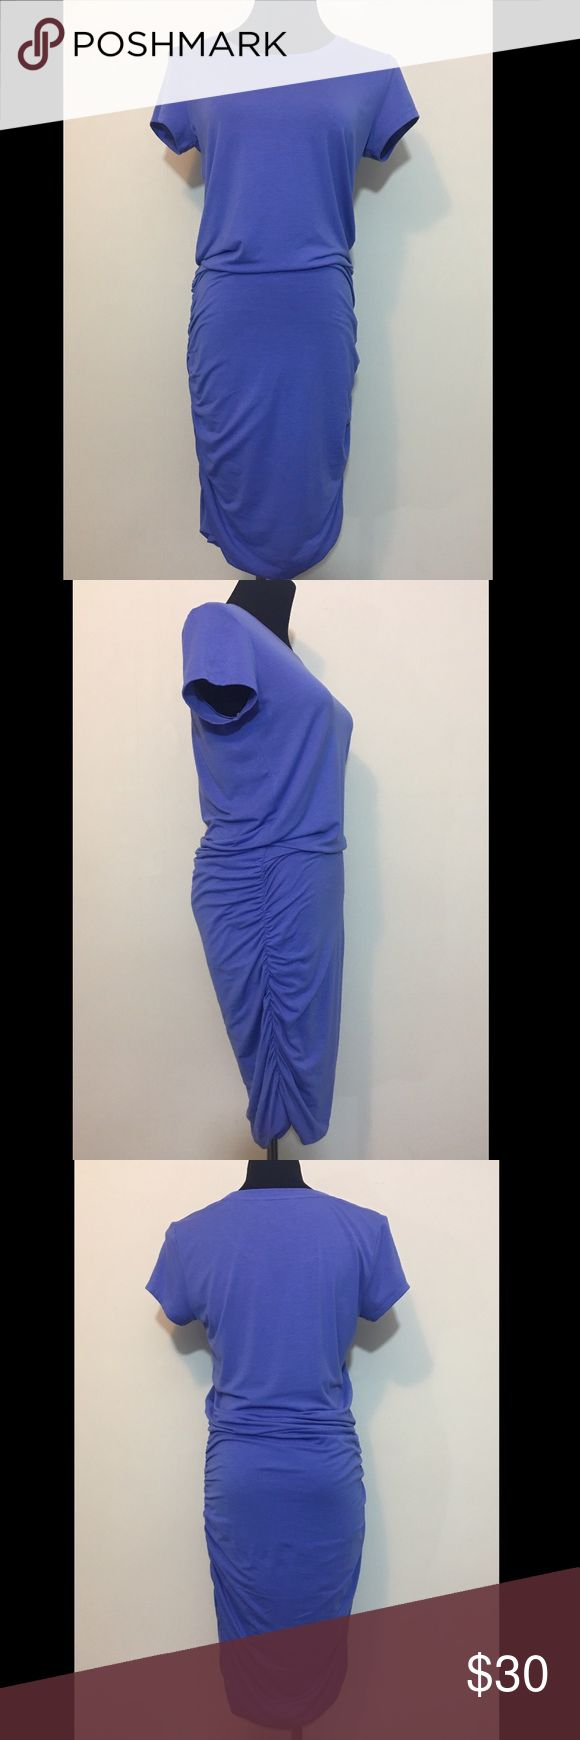 """Athleta Purple Dress Women's Tall Women's dress by Athleta. Purple. Short sleeve. Crewneck. Fold over waist and ruched skirt. Tall women's size small.  36"""" bust. Foldover waist and ruched skirt make the length of the dress adjustable. This is approximately a knee length dress.  62% polyester, 33% rayon, 5% spandex.  No rips, tears, stains, or flaws. From a smoke free home.  B015 Athleta Dresses Midi"""